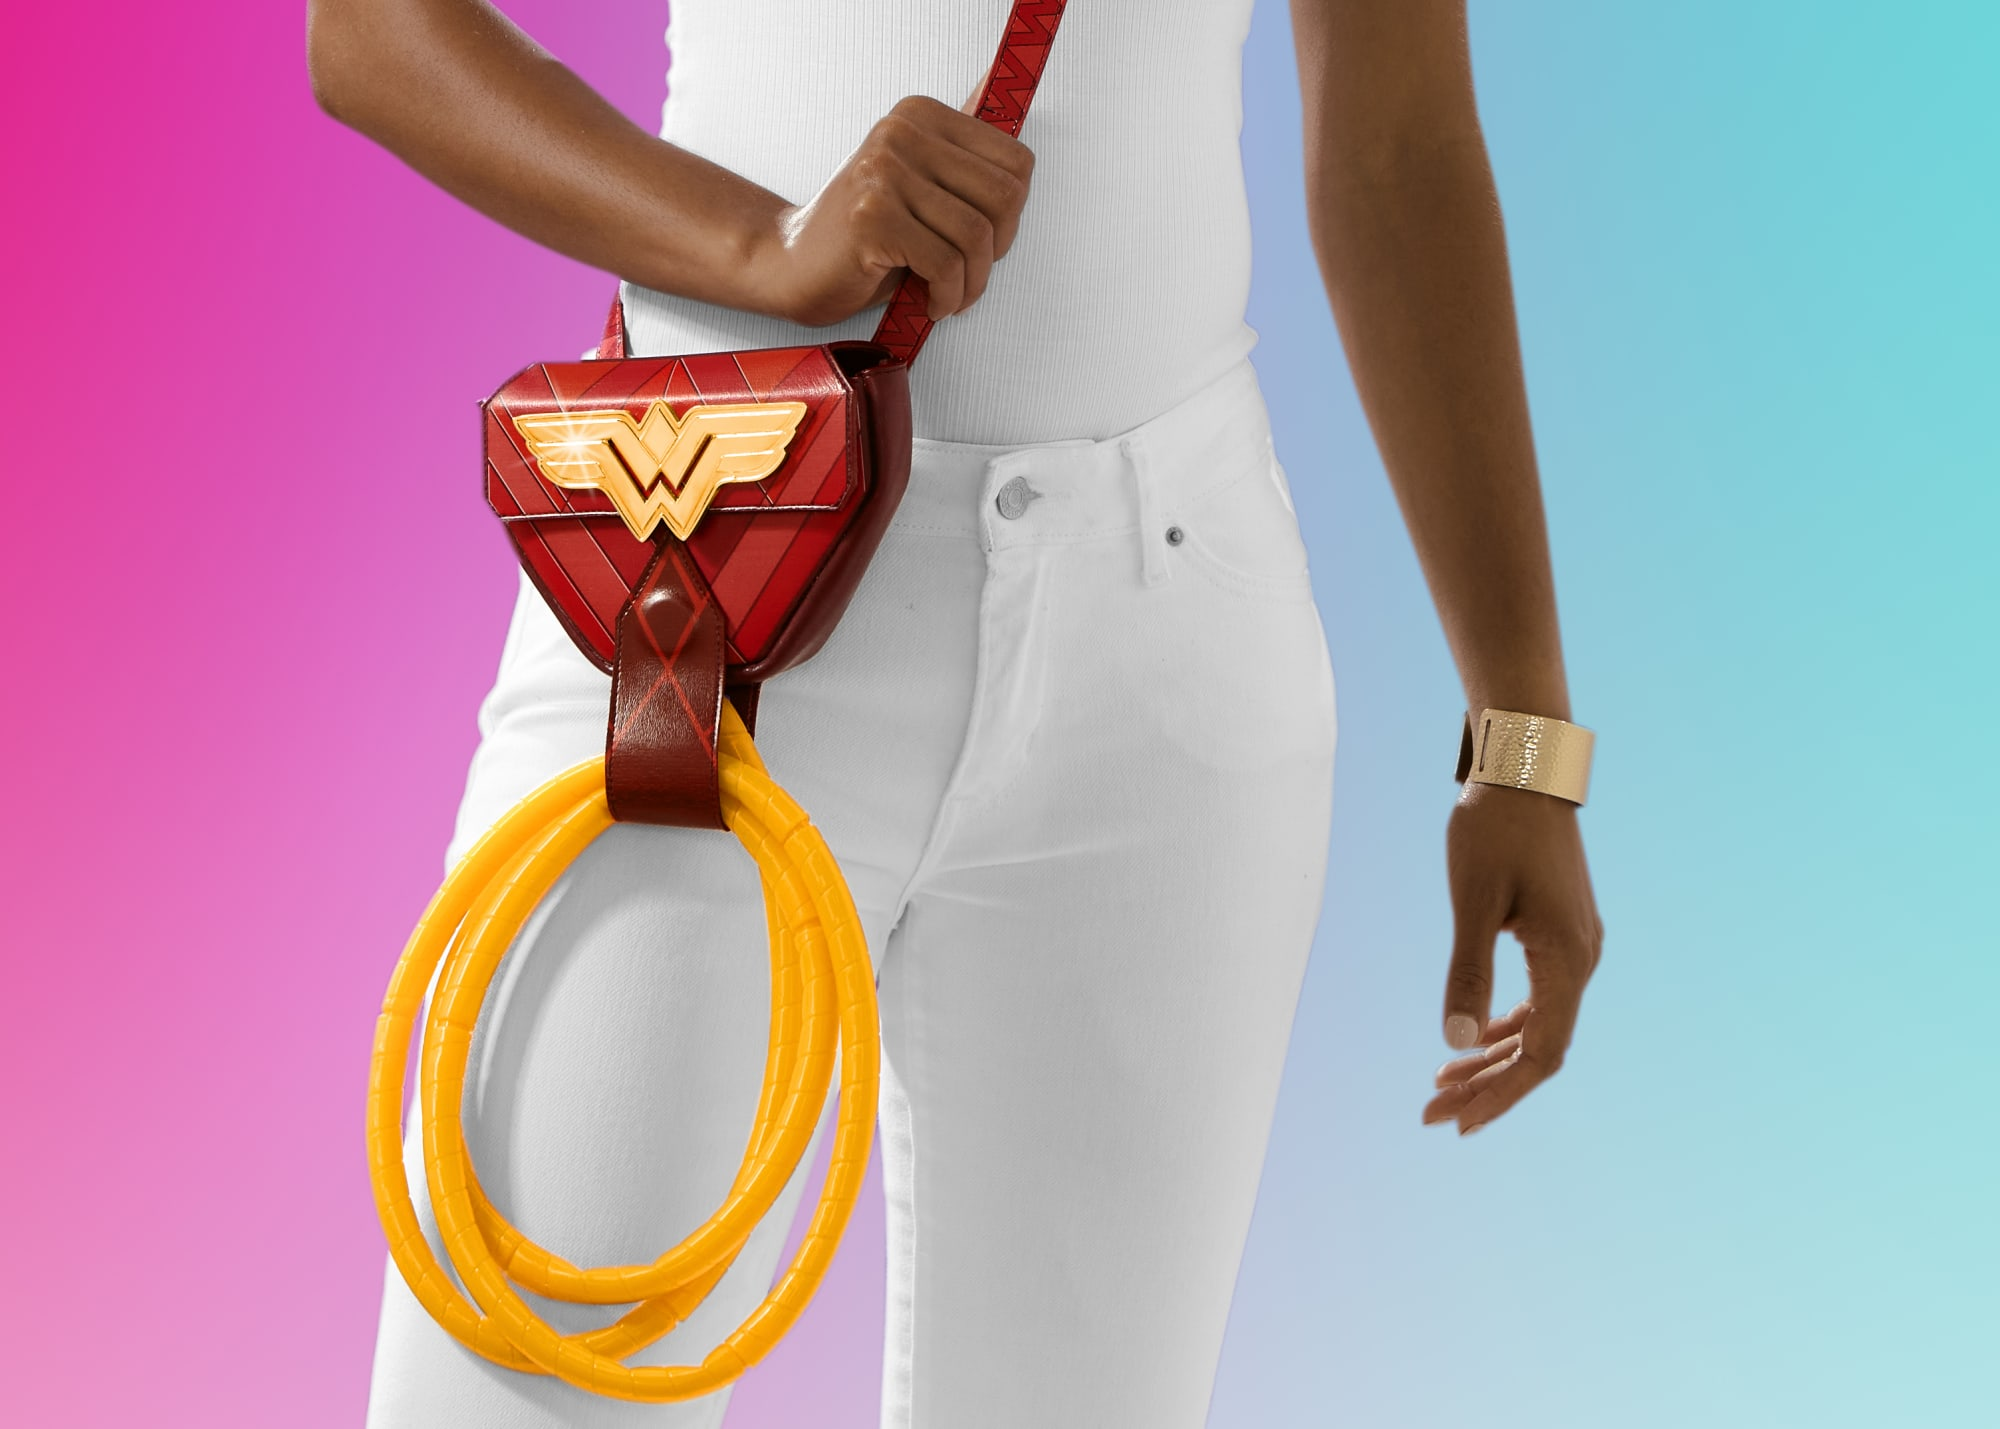 SweeTARTS Golden Ropes Holder is the ultimate Wonder Woman accessory